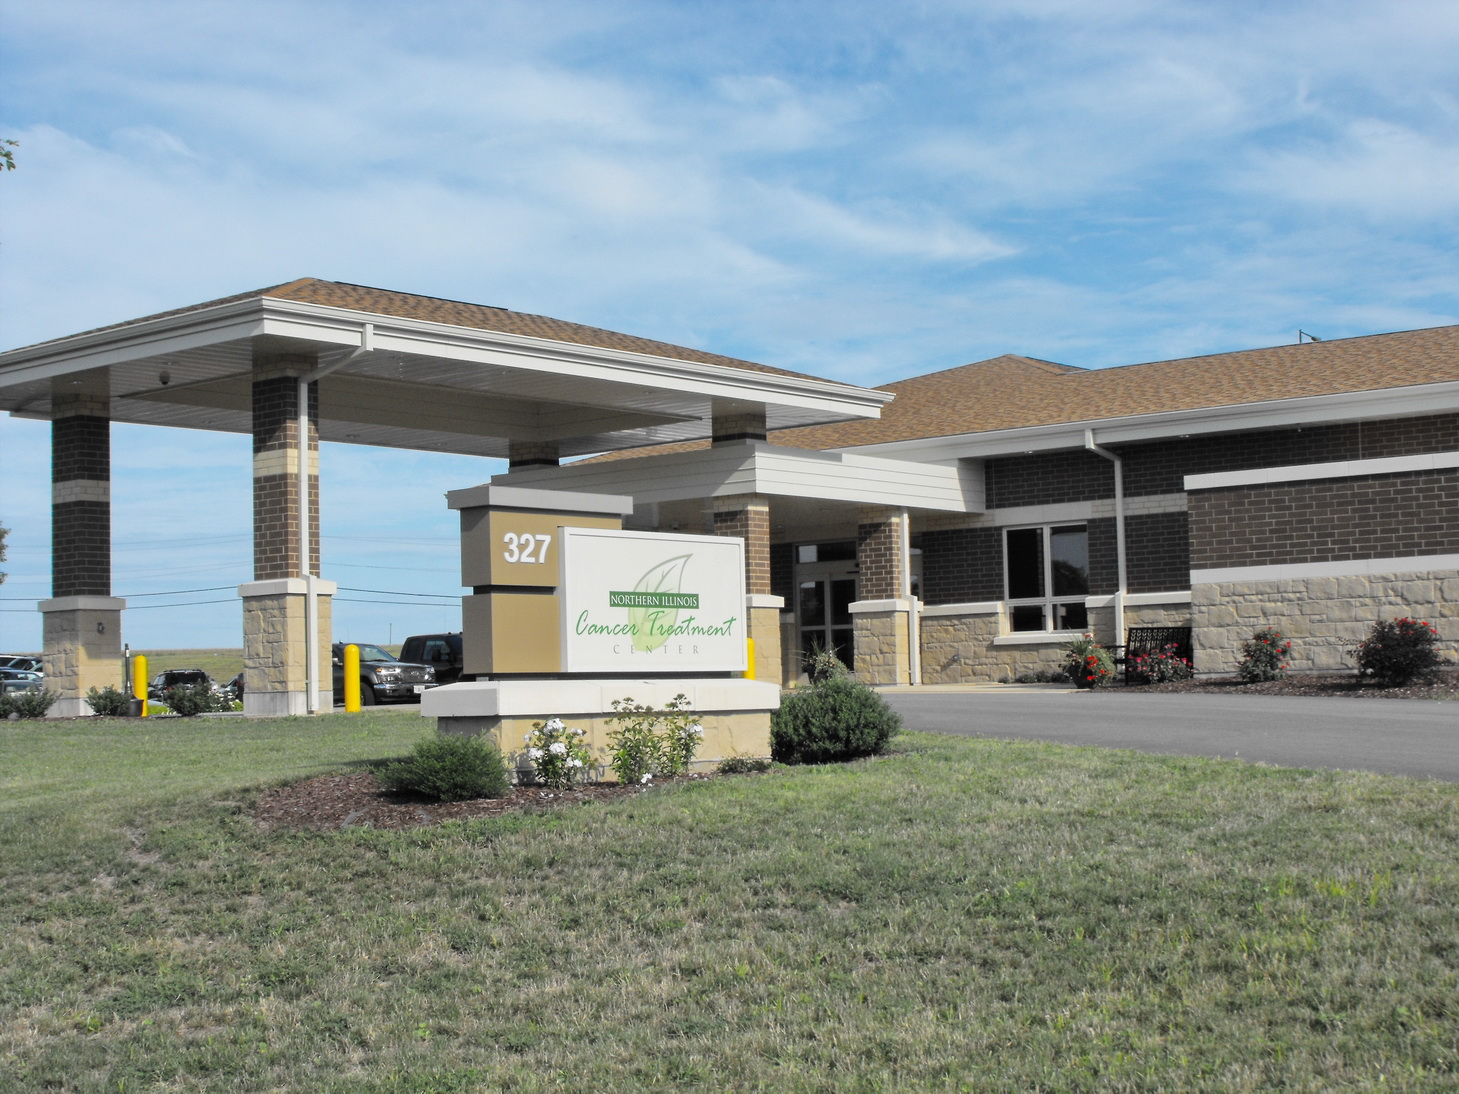 <h1>Northern Illinois Cancer Treatment Center</h1>